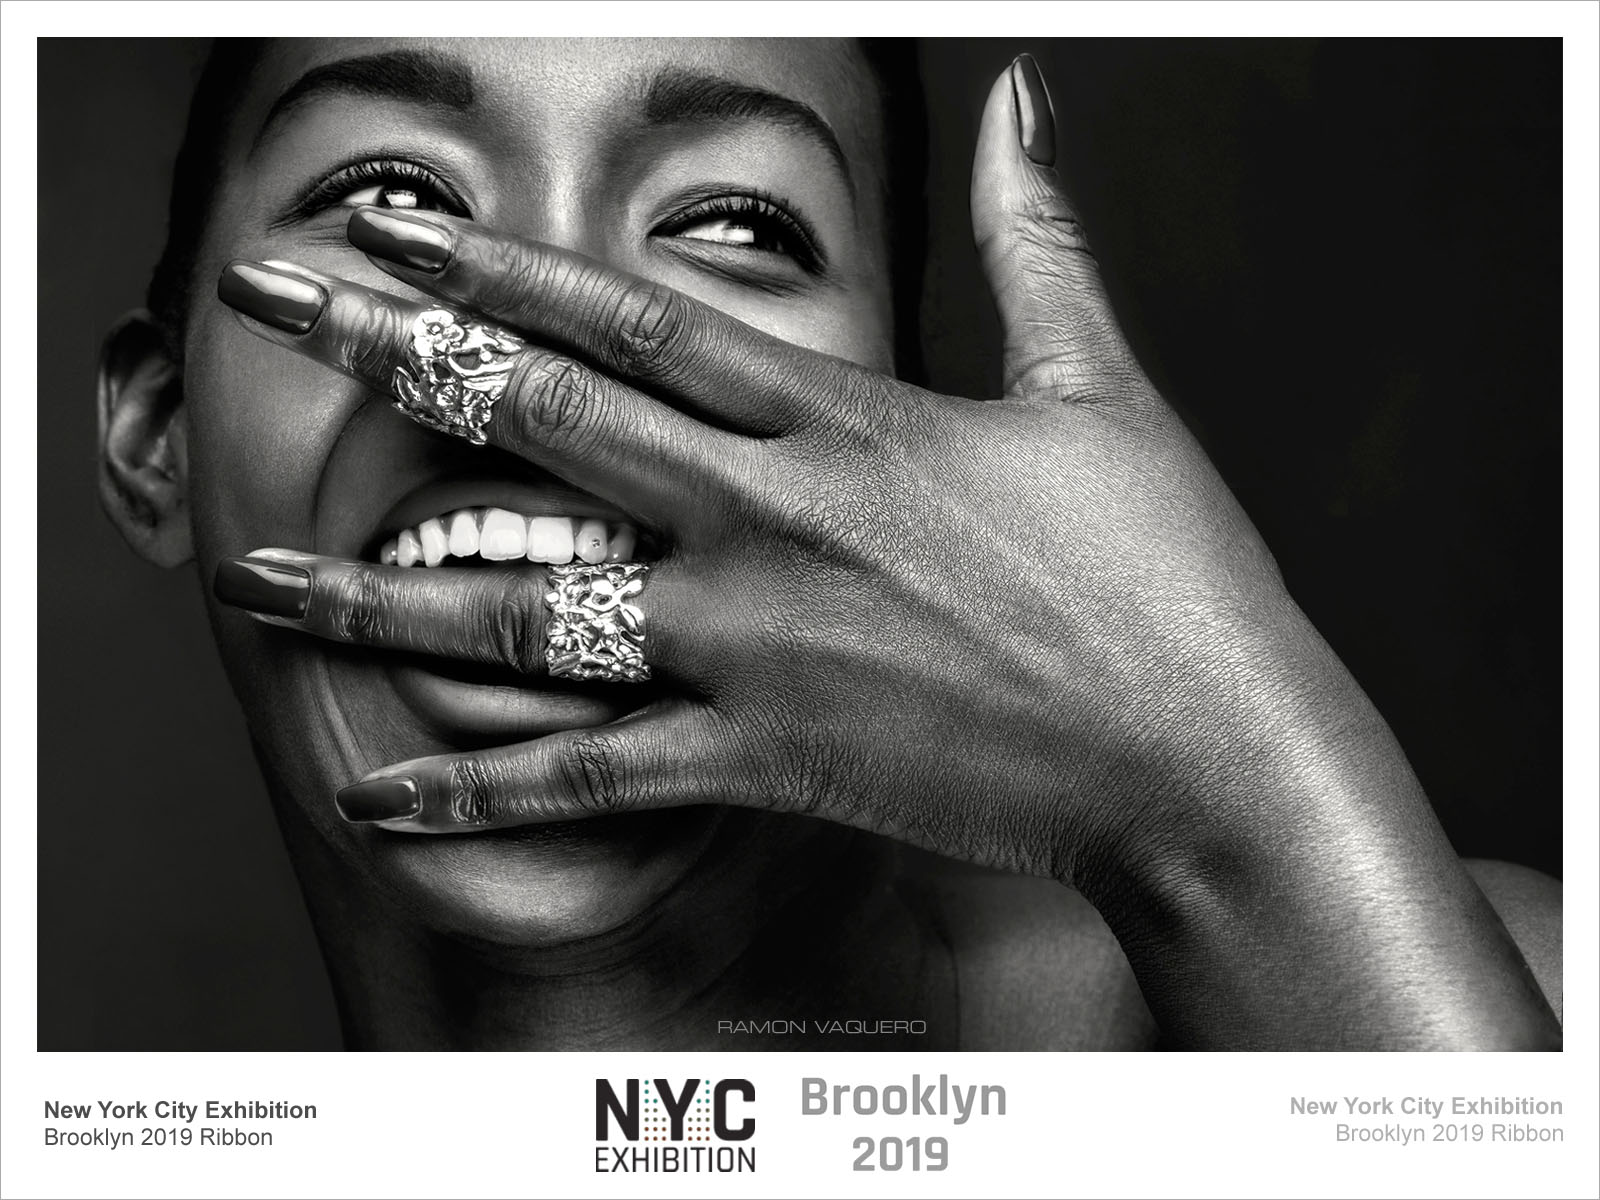 silver-bite_ramon vaquero_NYC-exhibition-brooklyn_2019_beauty_fashion